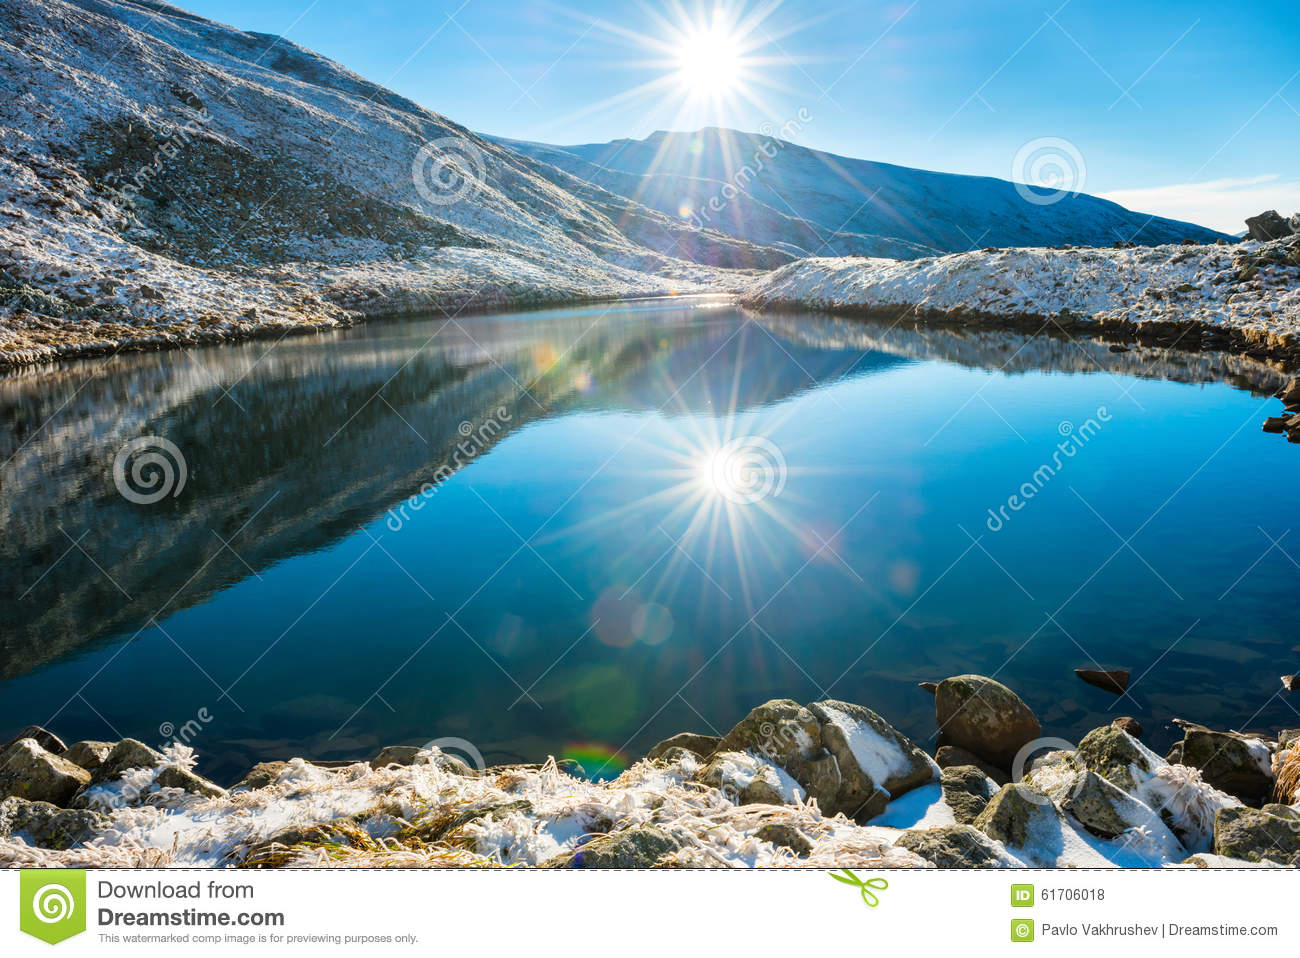 Beautiful Blue Lake Norway Stock Photo 224370790 - Shutterstock